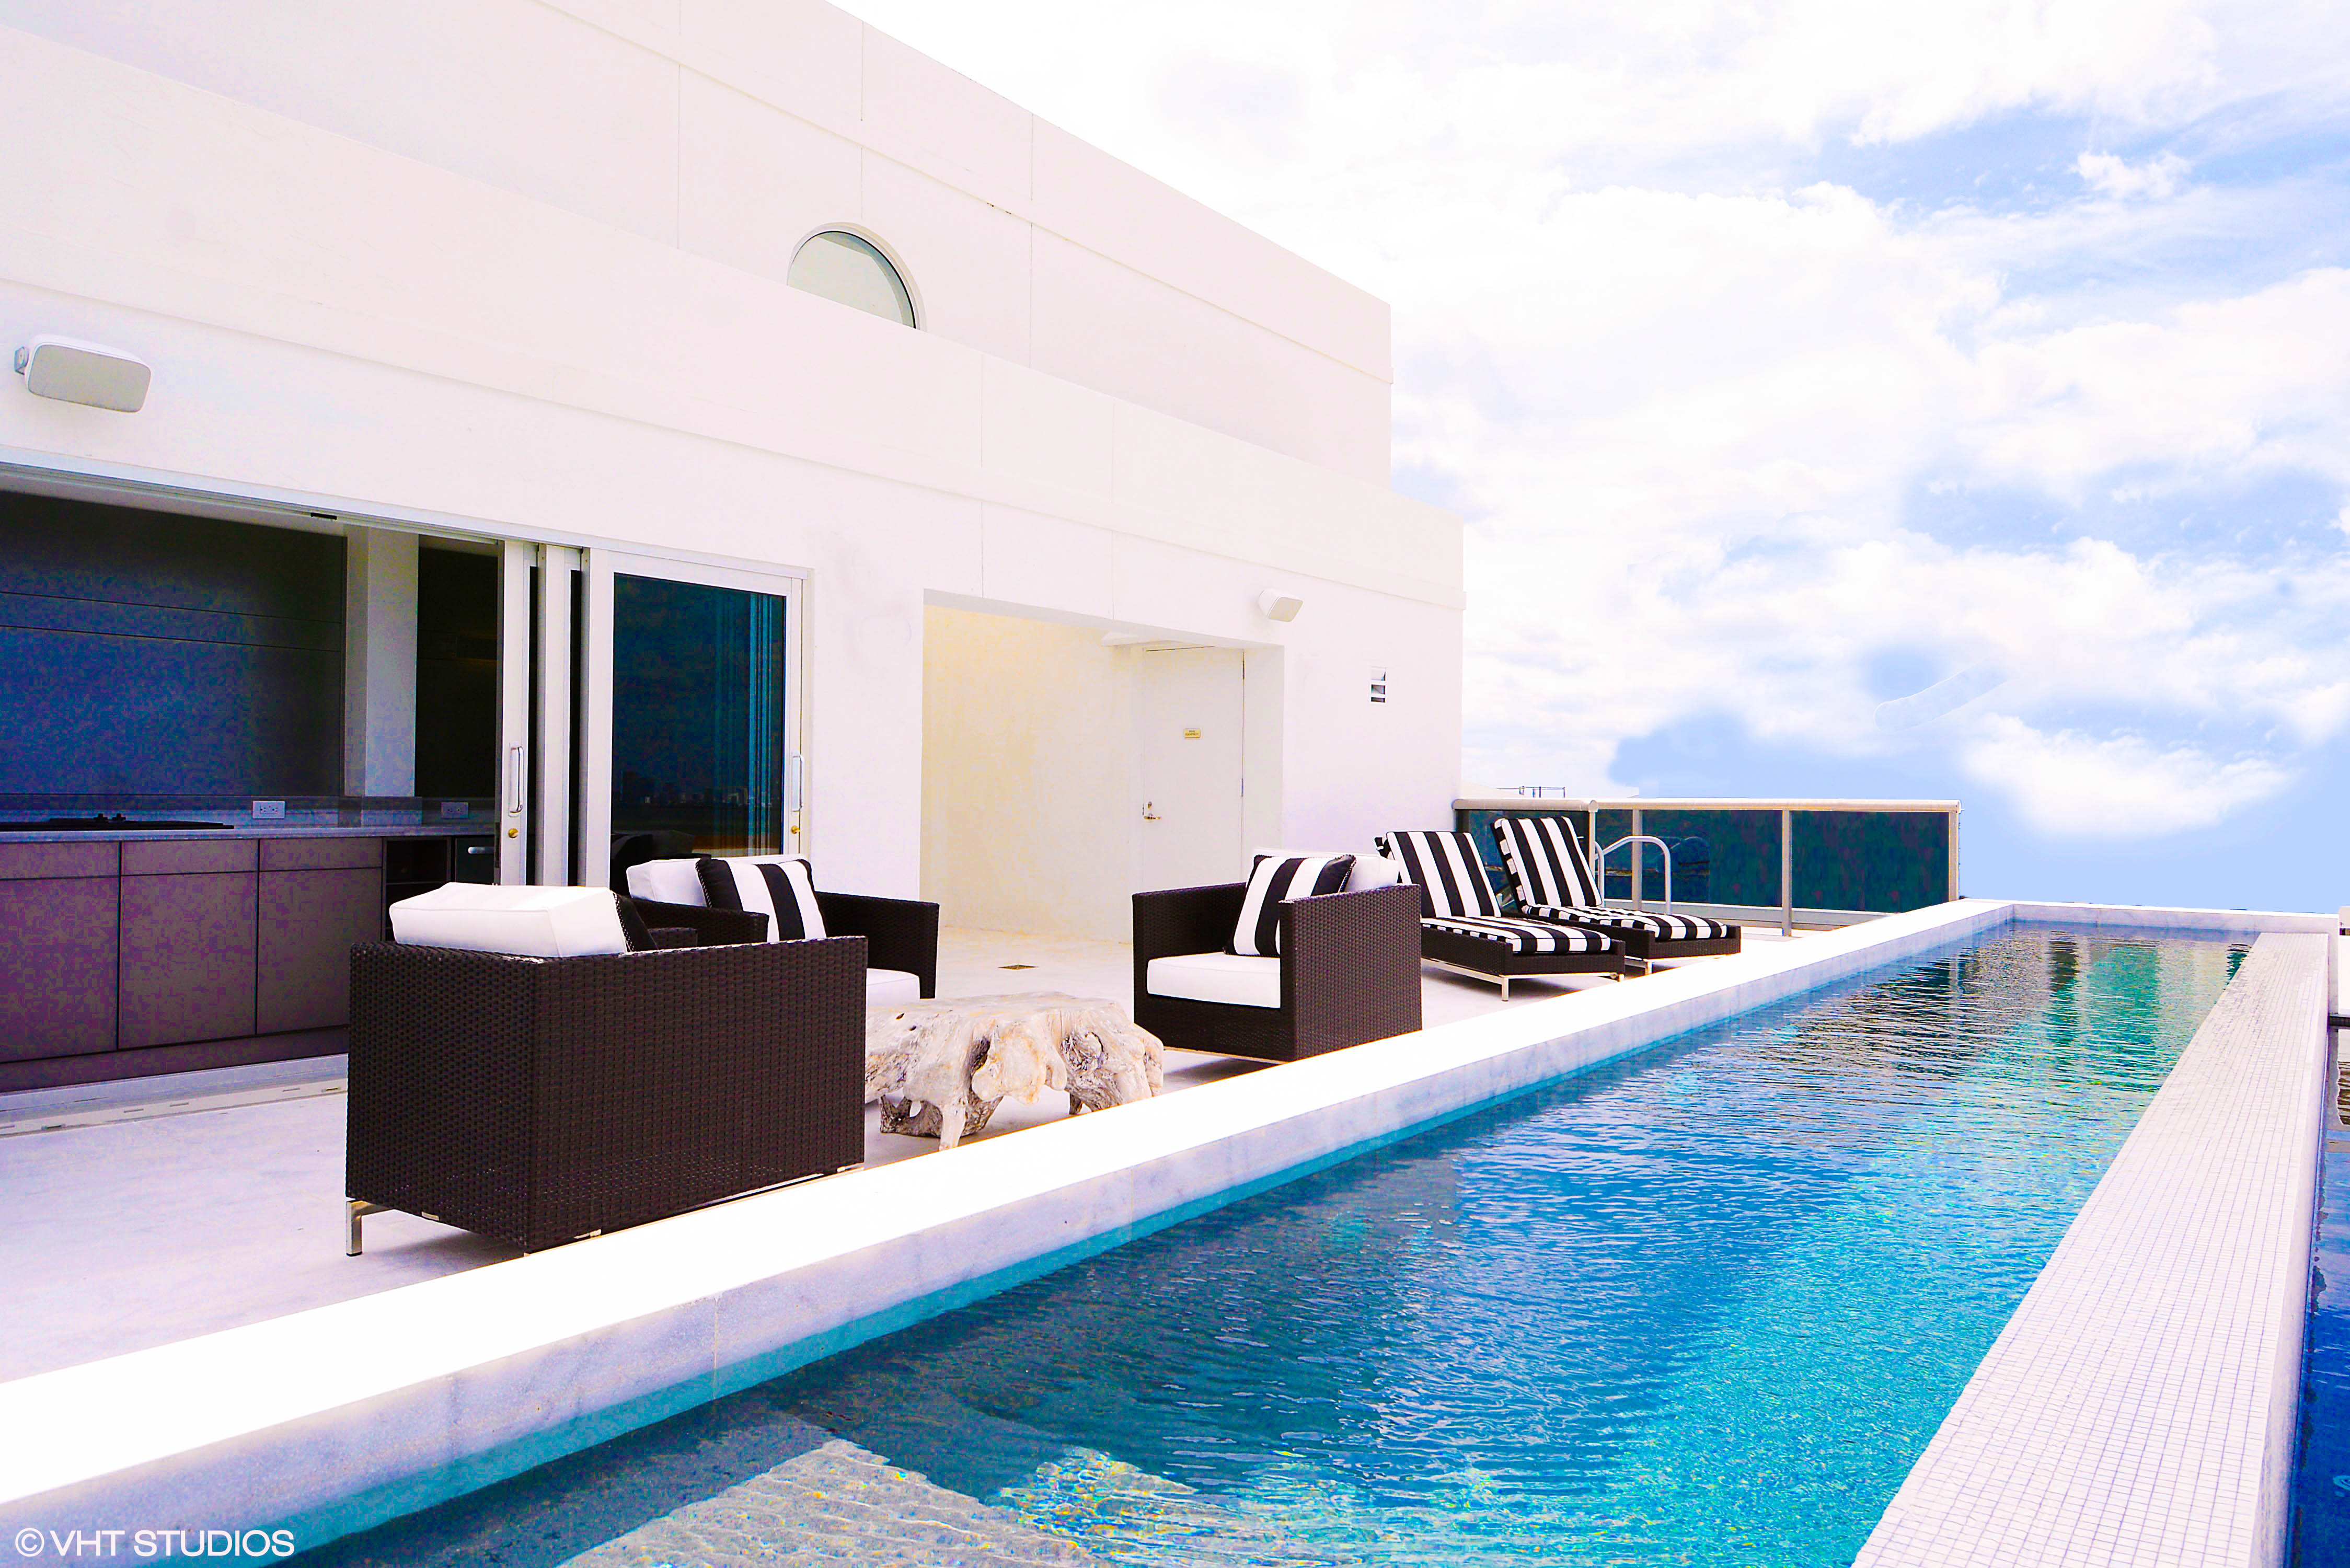 A rooftop penthouse with modern outdoor furniture on the terrace and a plunge pool